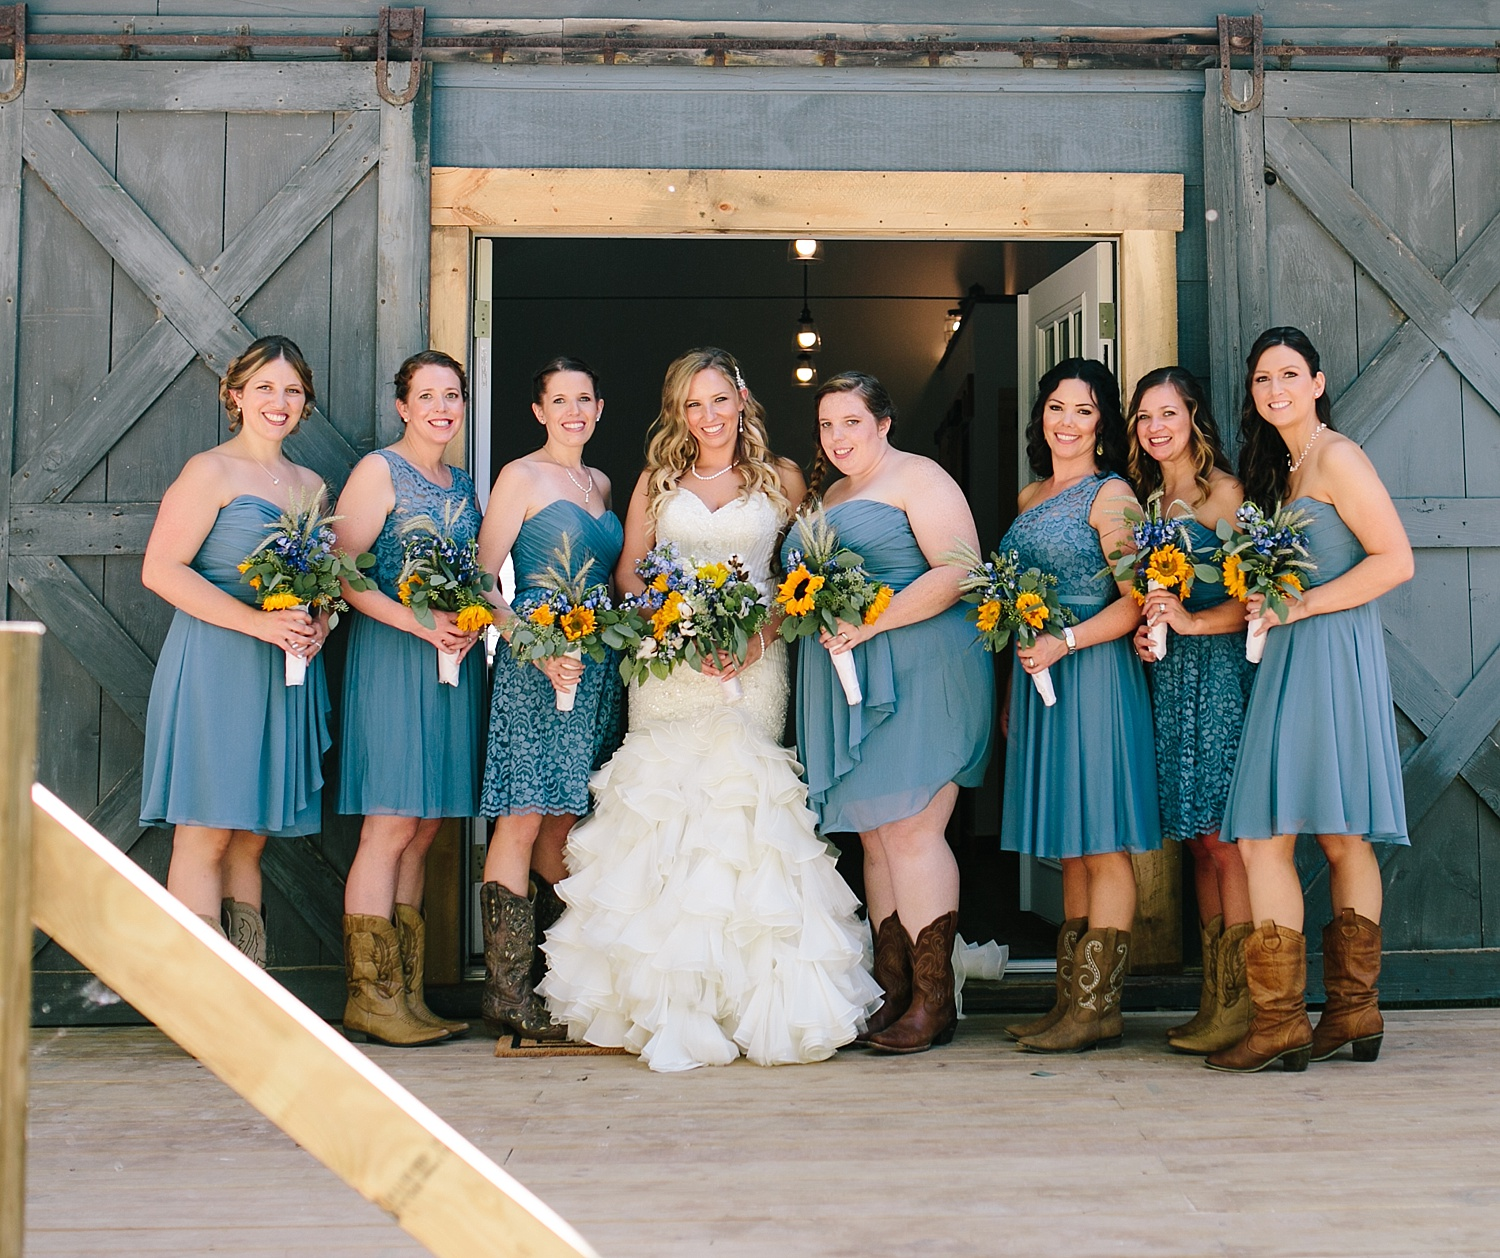 jennyryan_newbeginnings_farmstead_upstatenewyork_wedding_image040.jpg